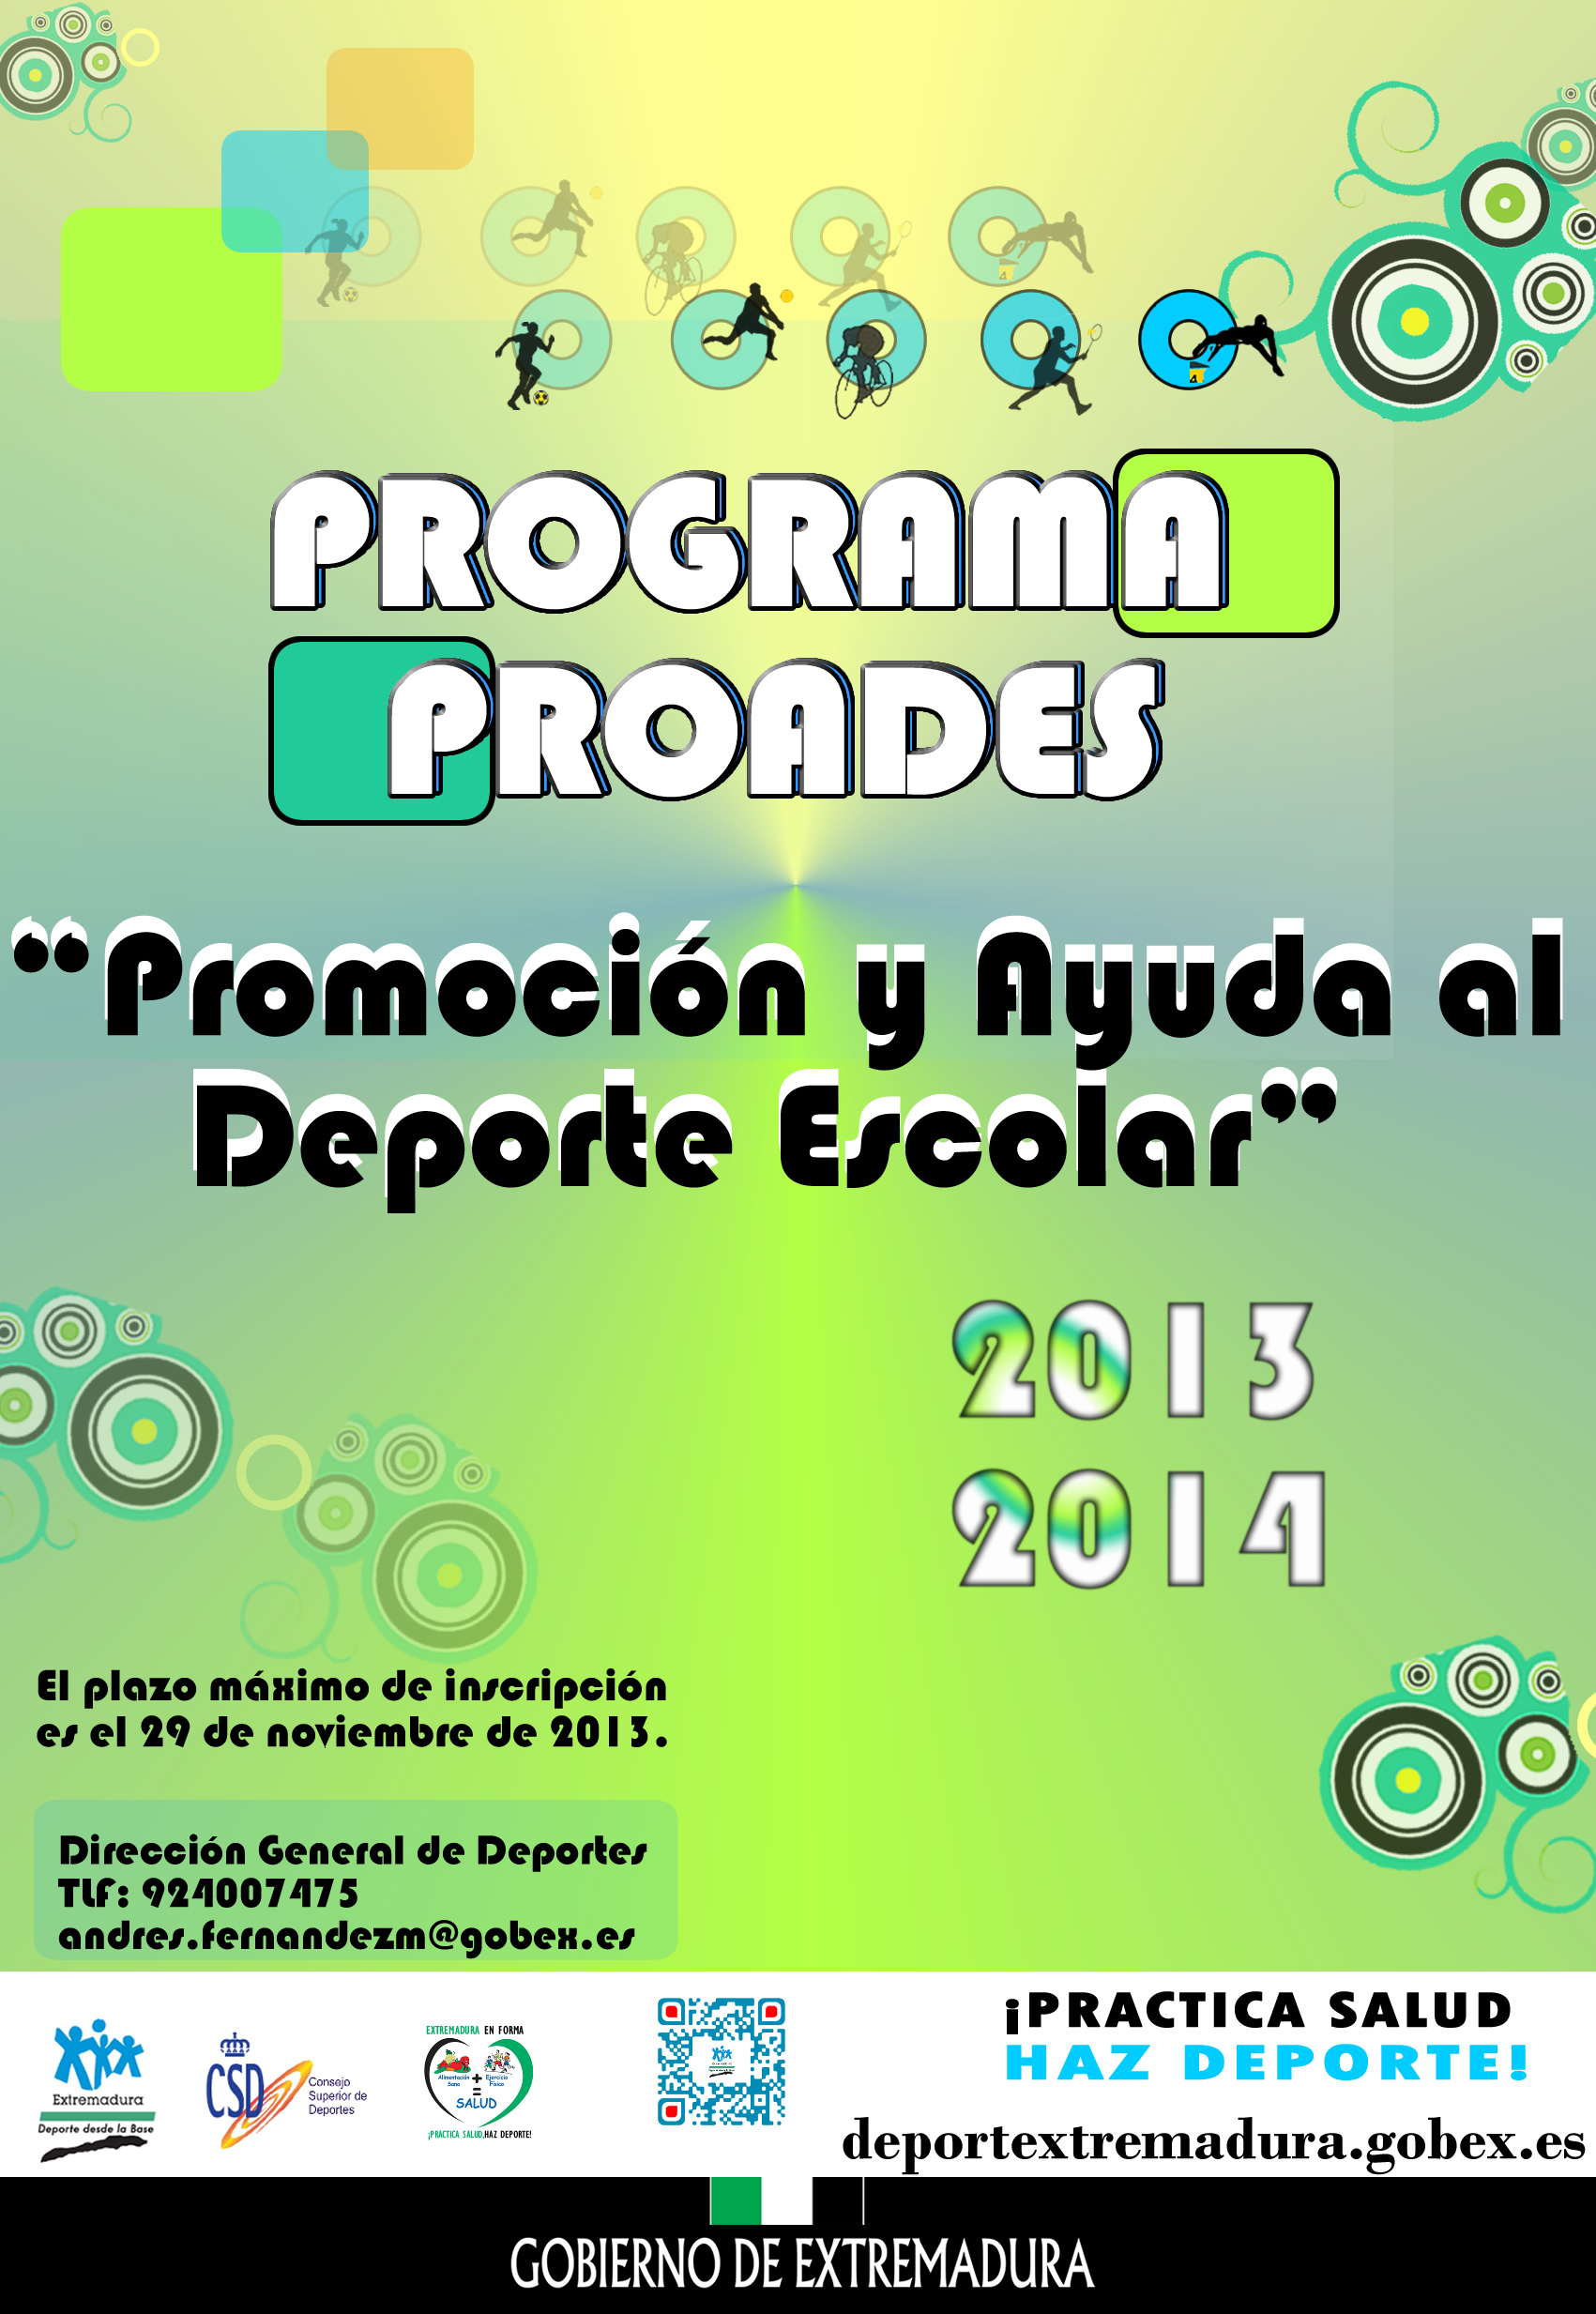 Proades 2014 DGD Extremadura